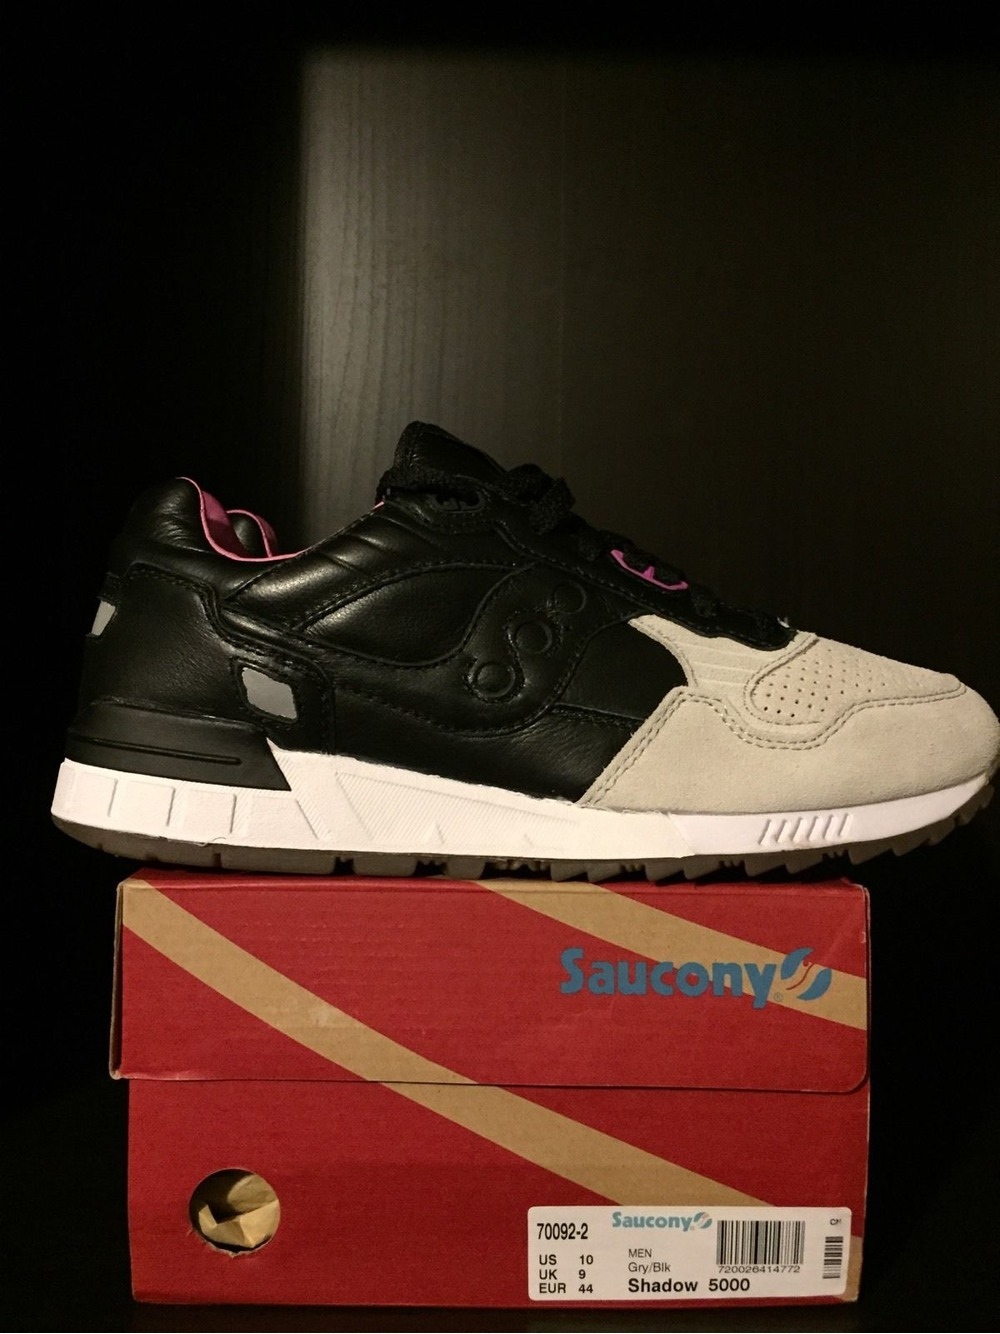 The Sneakers Box SAUCONY SHADOW 5000 x SNEAKERS76 10th